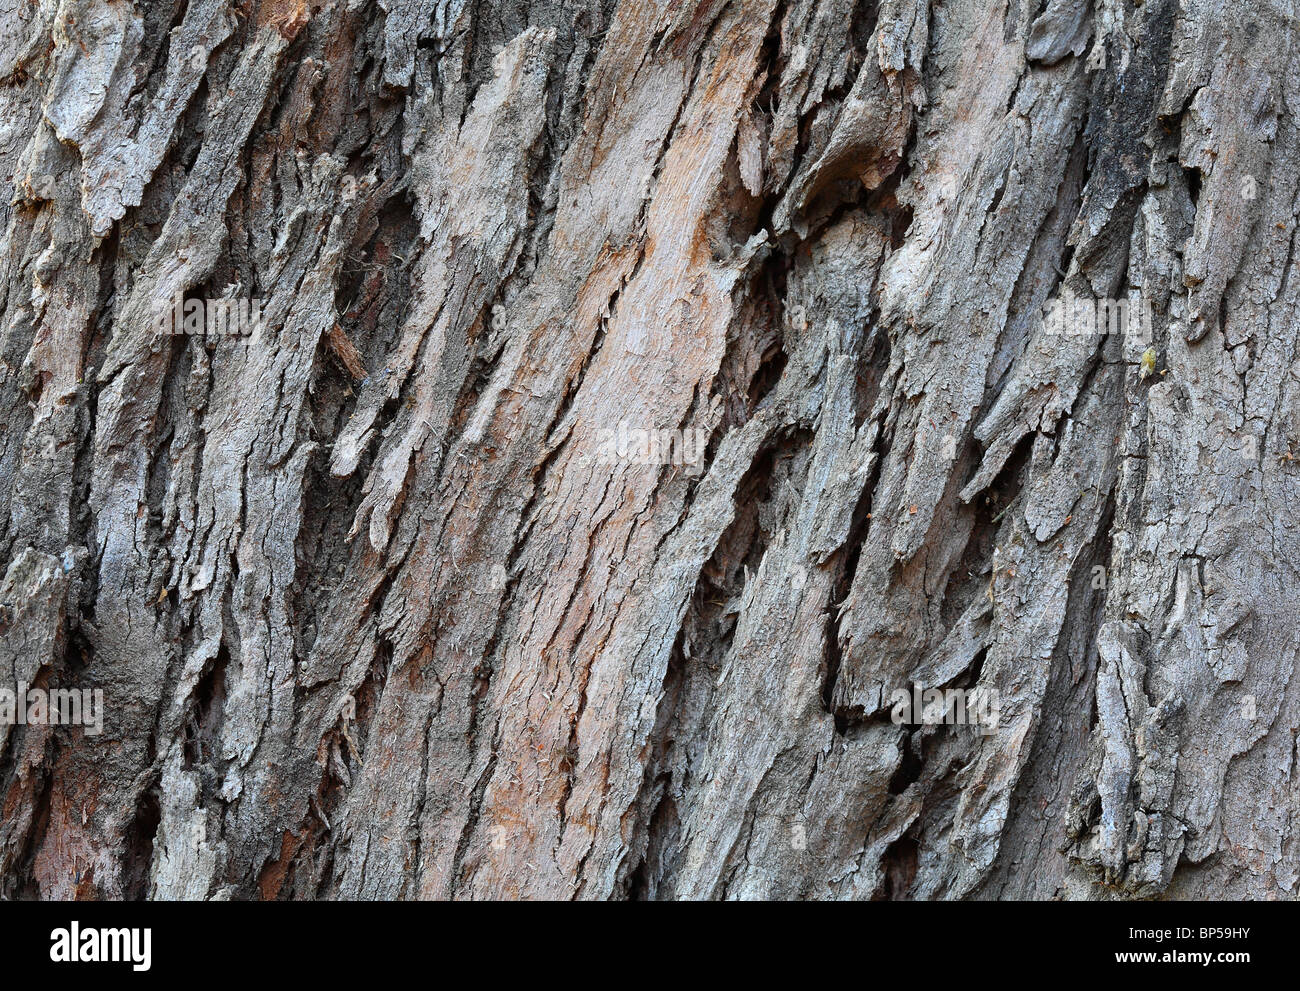 Macro shot of eucalyptus tree bark texture for use as natural background - Stock Image